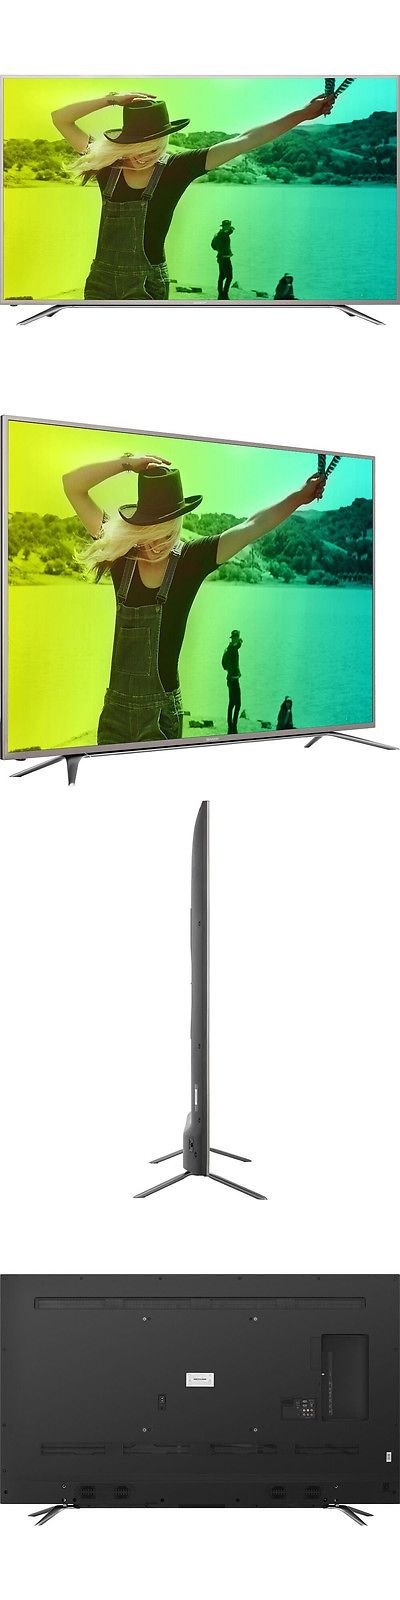 Televisions: Sharp Aquos N7000 65 Class 4K Ultra Hd Wifi Smart Led Hdtv -> BUY IT NOW ONLY: $999.99 on eBay!